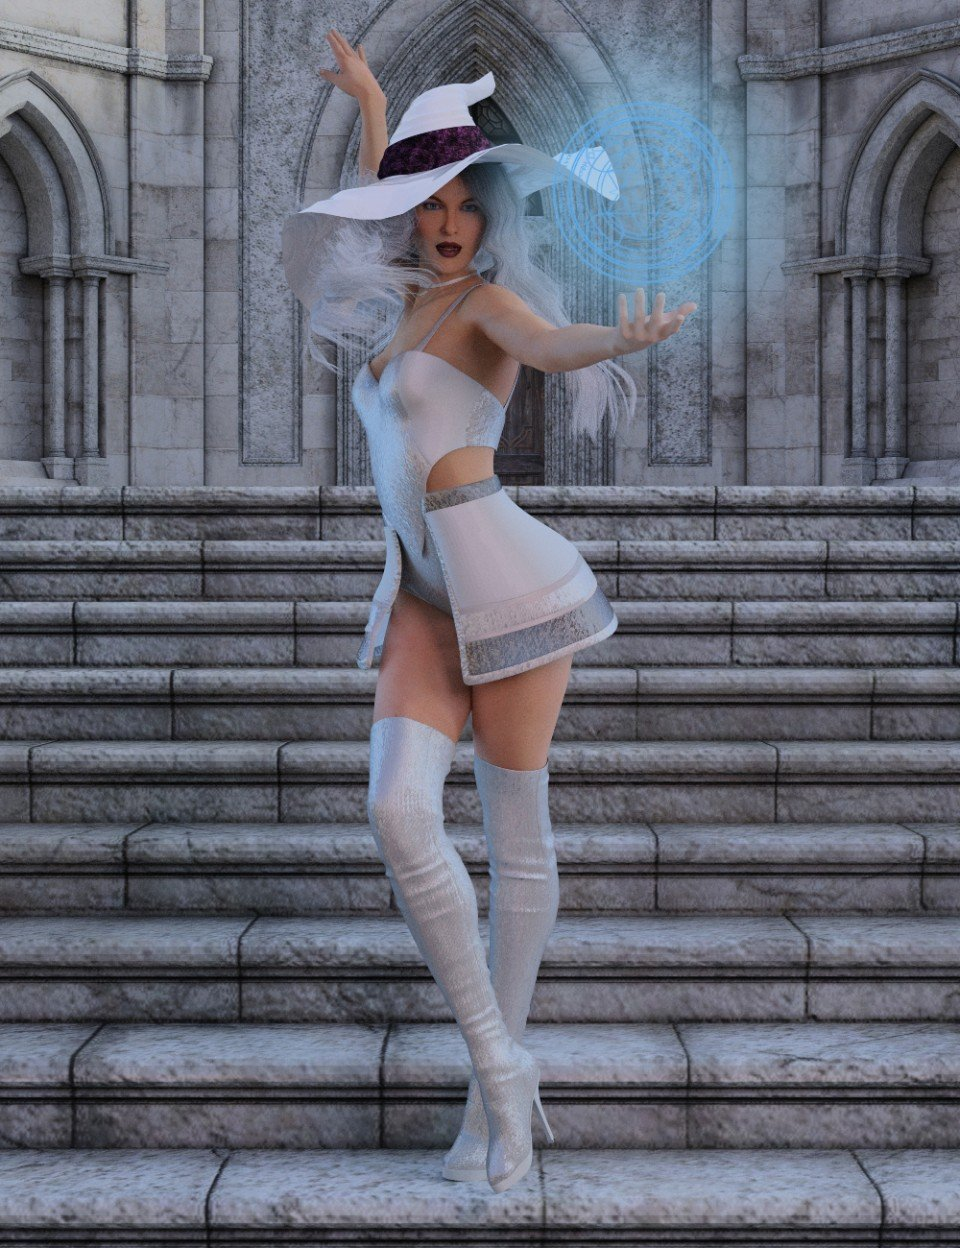 White Witch Poses for Genesis 8 Female_DAZ3D下载站